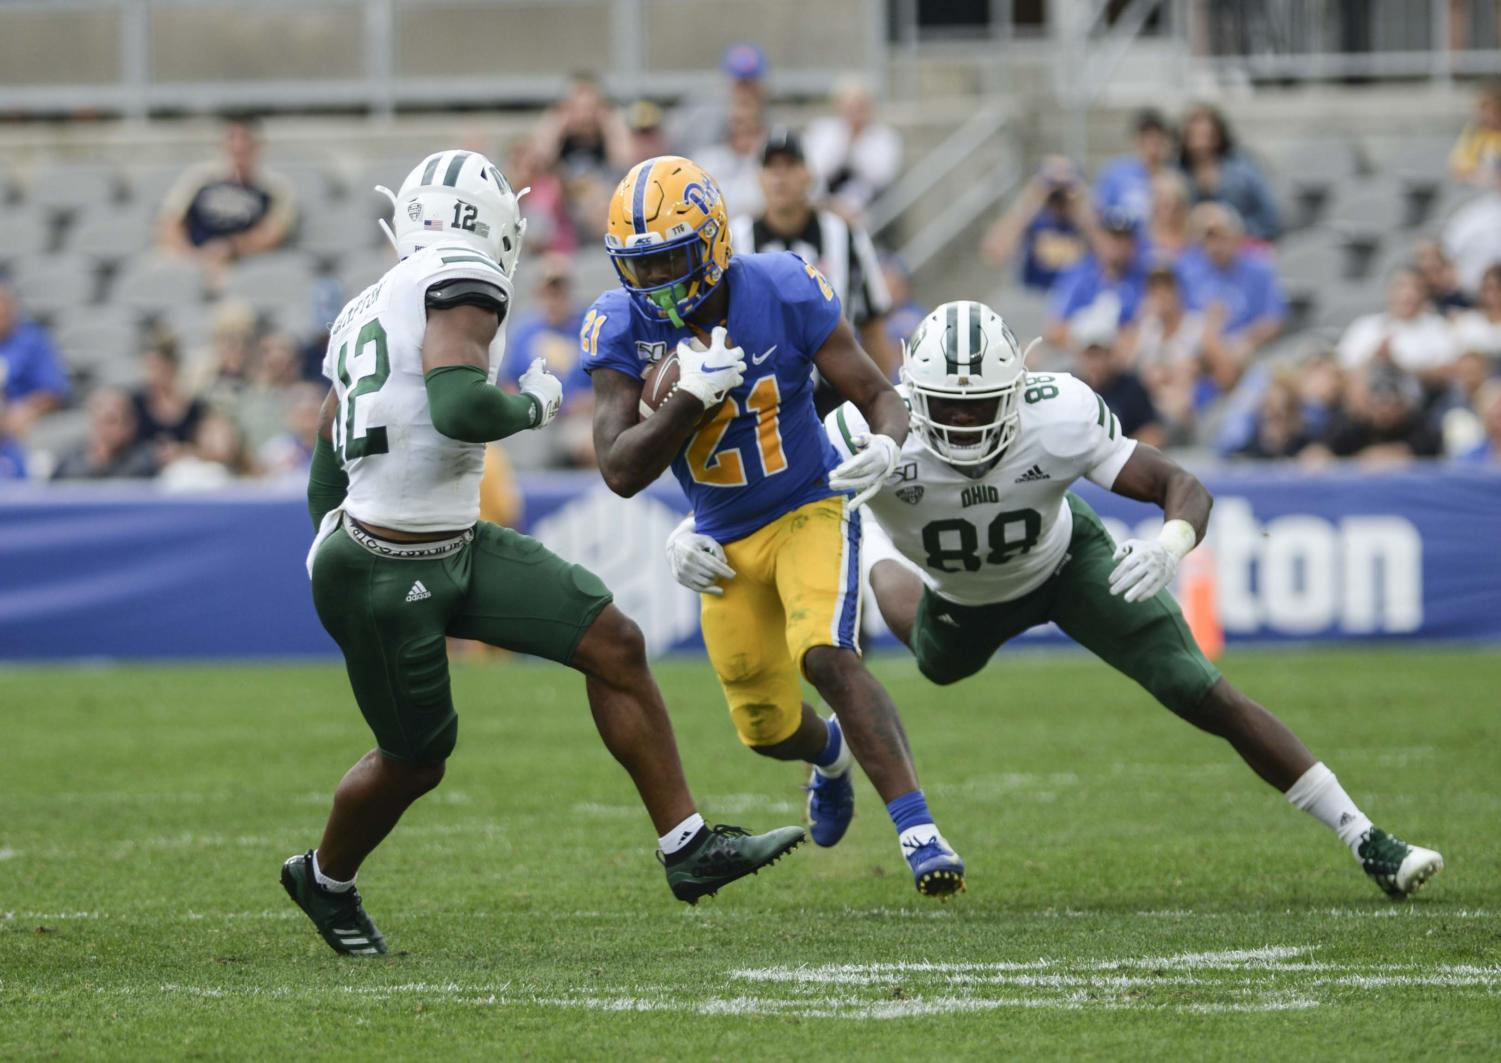 Junior running back A.J. Davis (21) achieved the first 100-yard rushing game of his career, picking up 103 yards on 16 carries against Syracuse on Saturday.